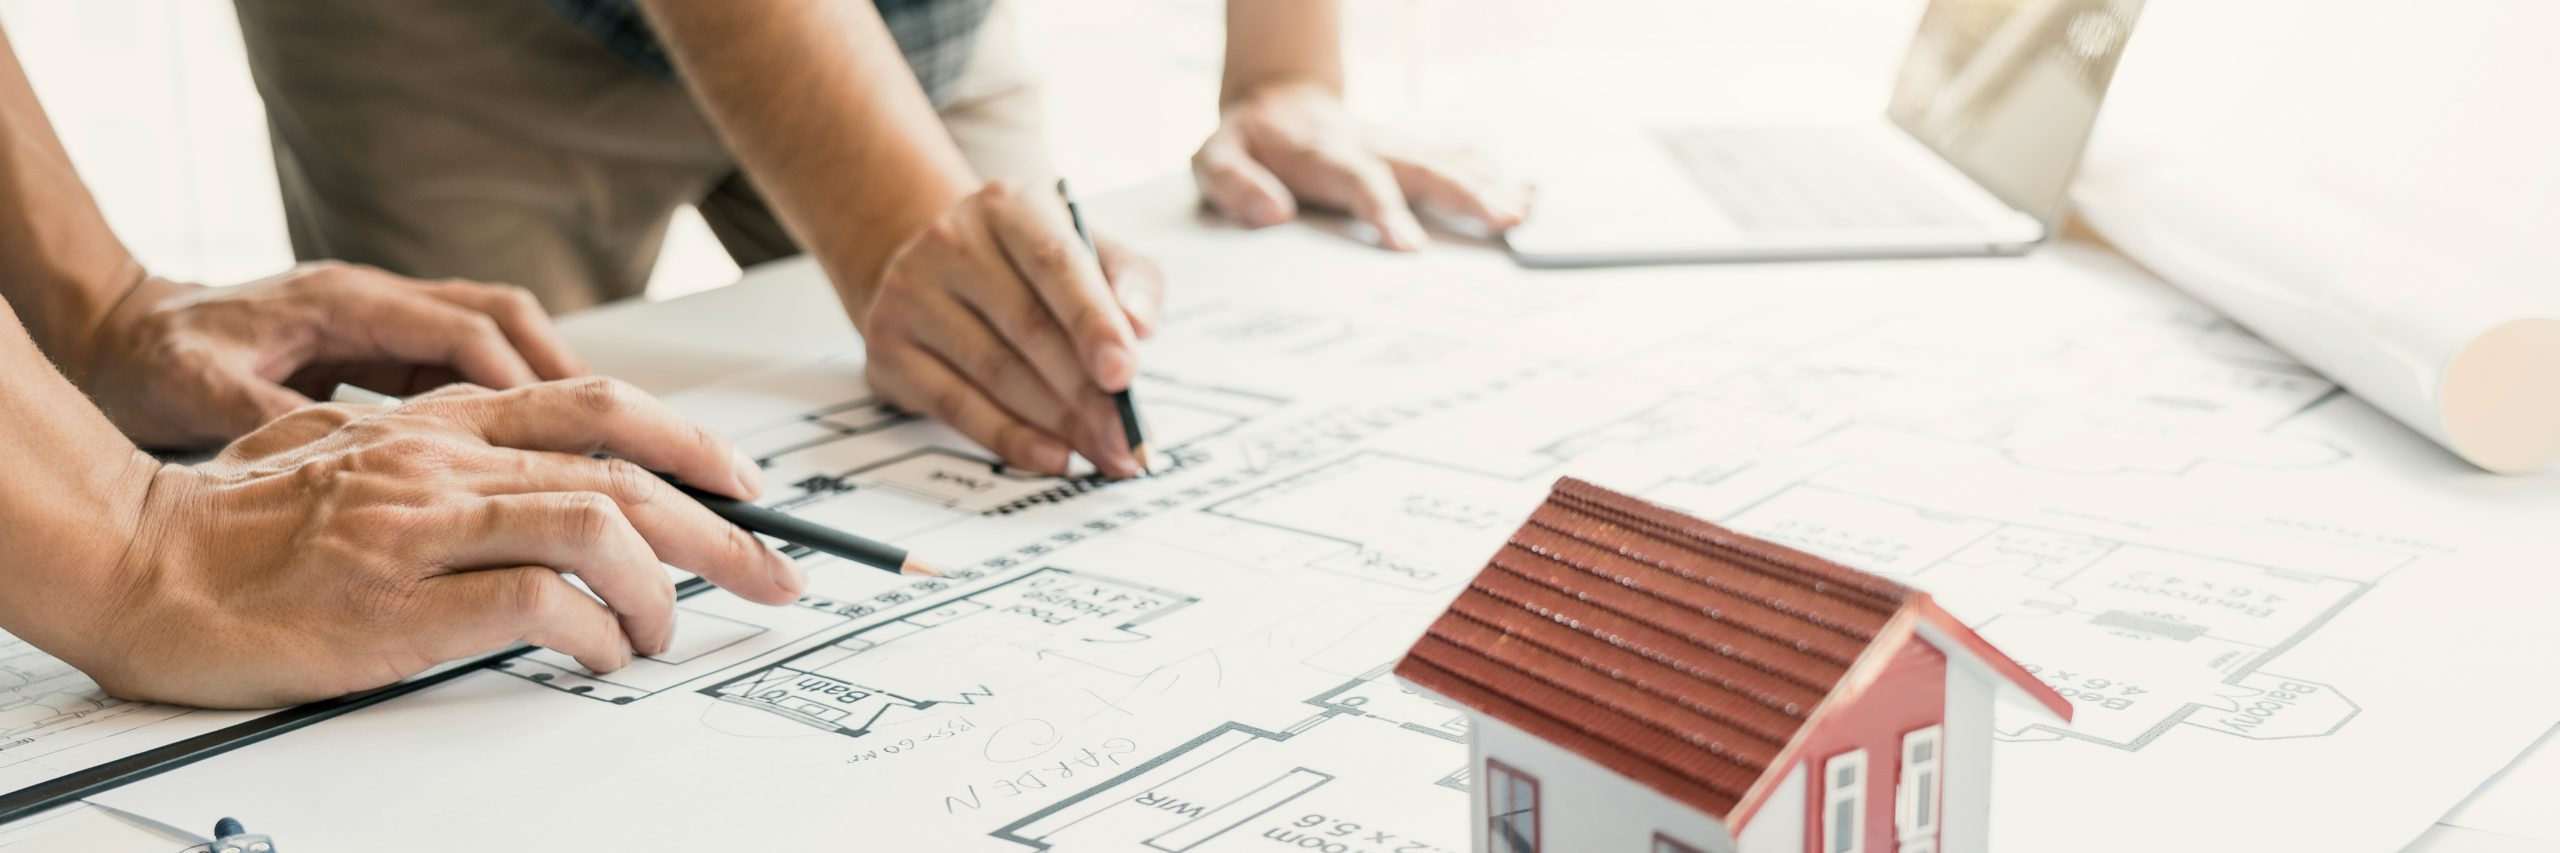 Project Managers are helping to design work on blueprints and collaborate on structural analyzing of project types.